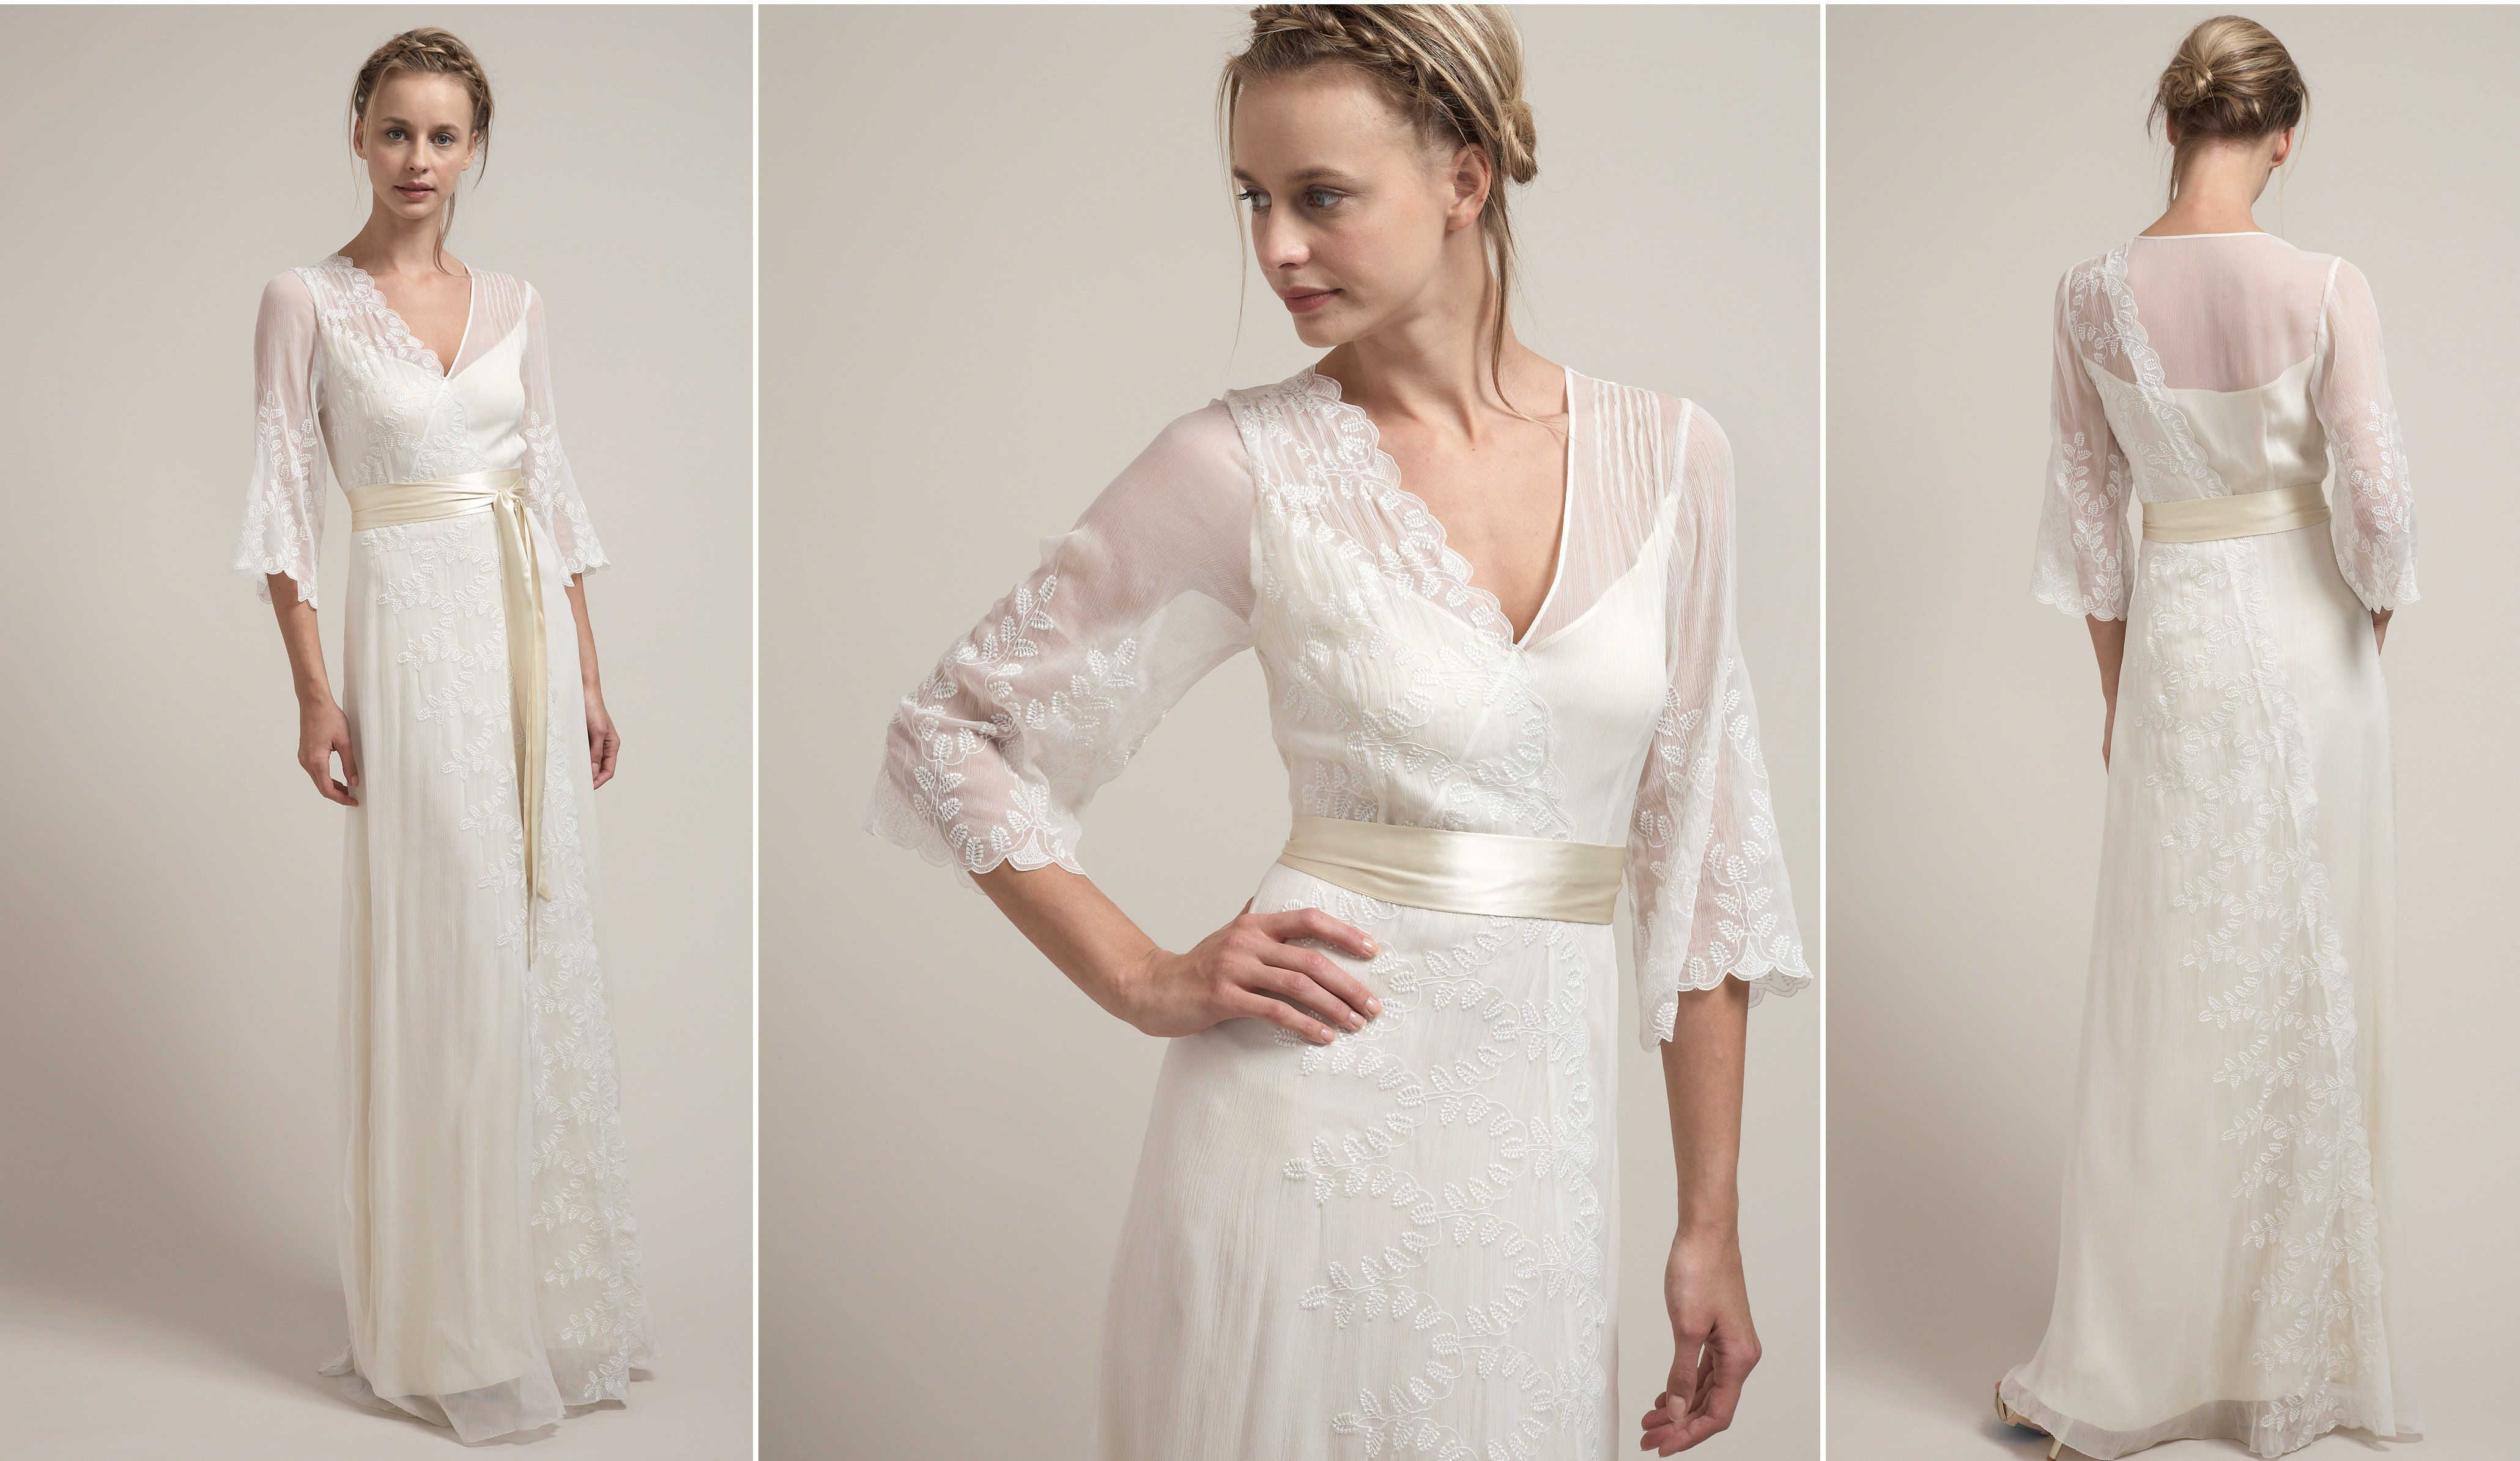 1940s style wedding dresses  Rustic Wedding Gowns By Saja  Rustic wedding gowns Vintage style